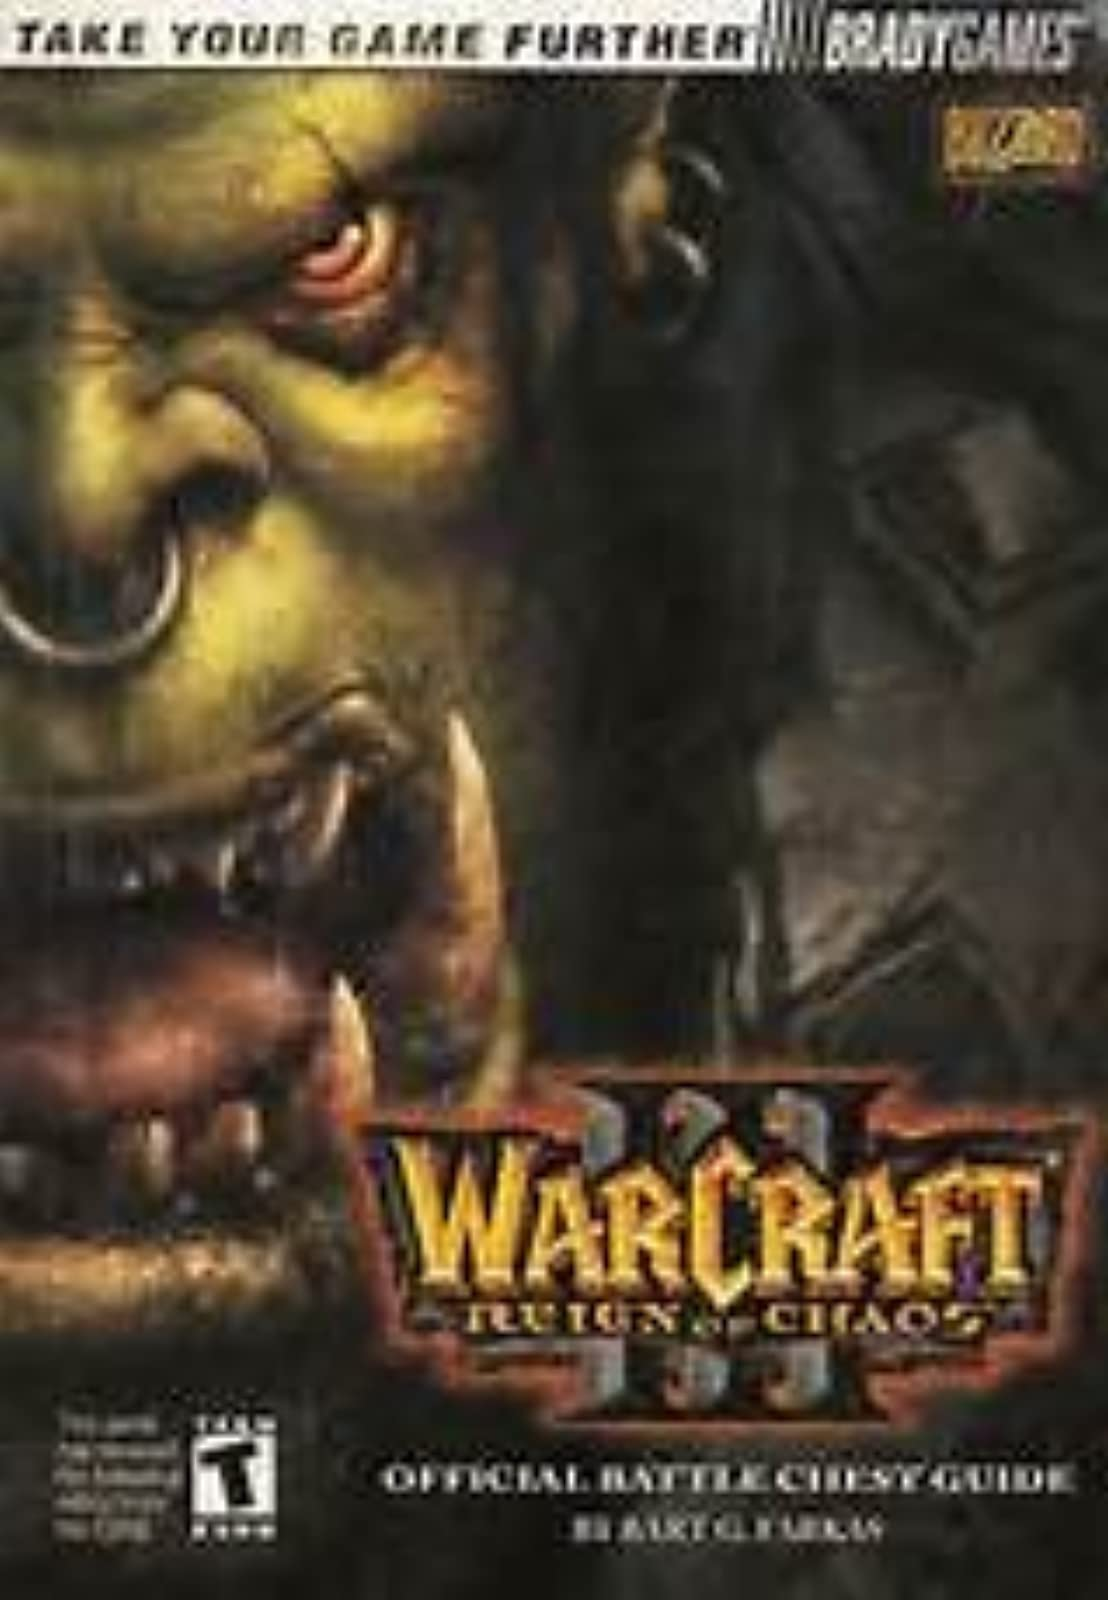 Warcraft III: Reign Of Chaos Official Battle Chest Guide Strategy Guide